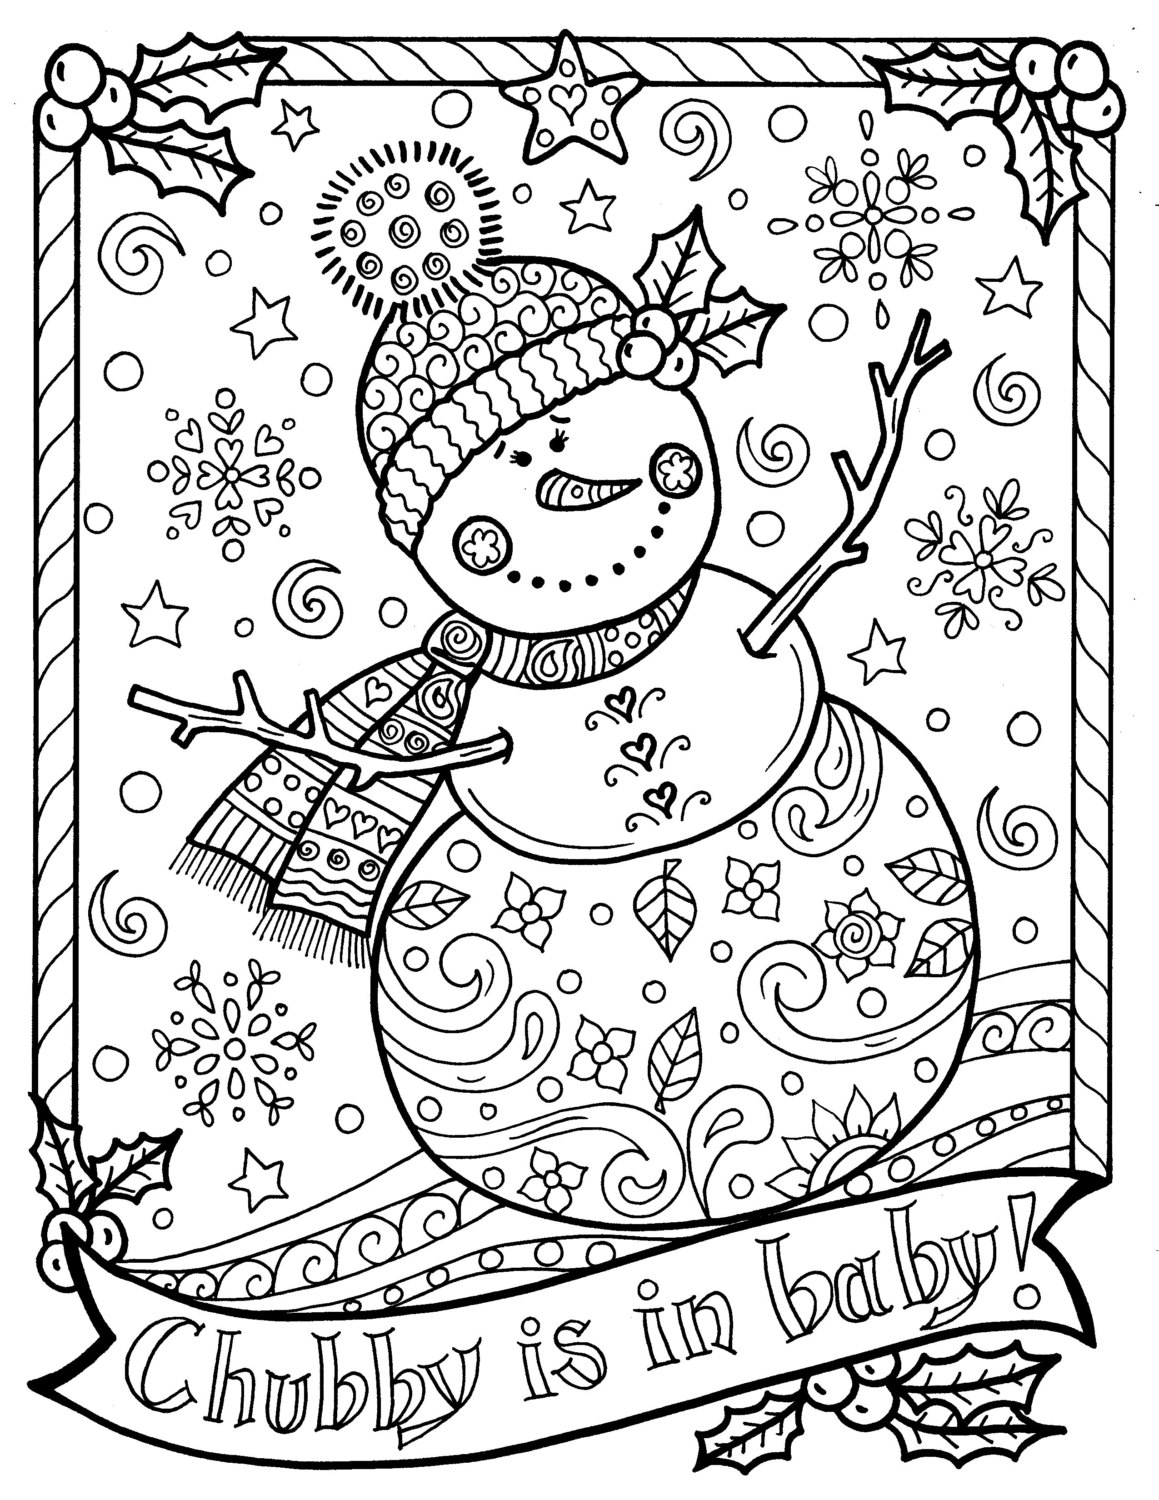 free online coloring pages for adults christmas christmas coloring pages for adults wallpapers9 coloring pages christmas for free online adults